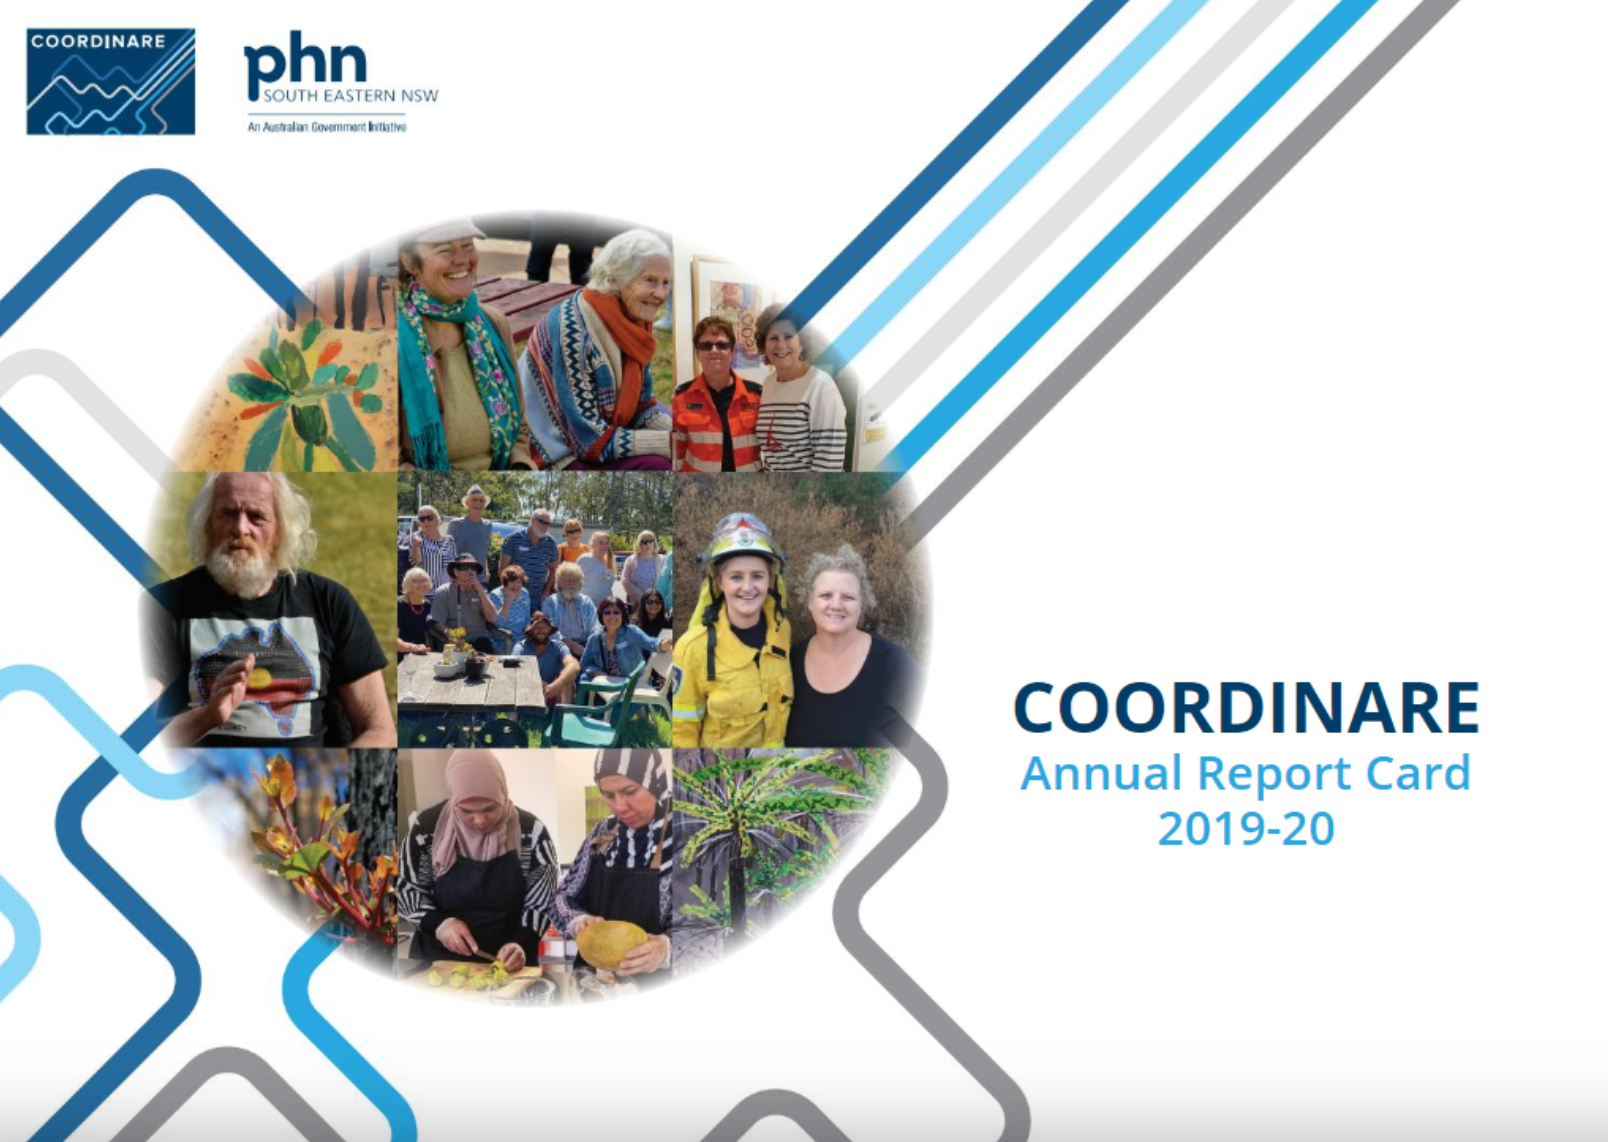 COORDINARE Annual Report Card 2019/20